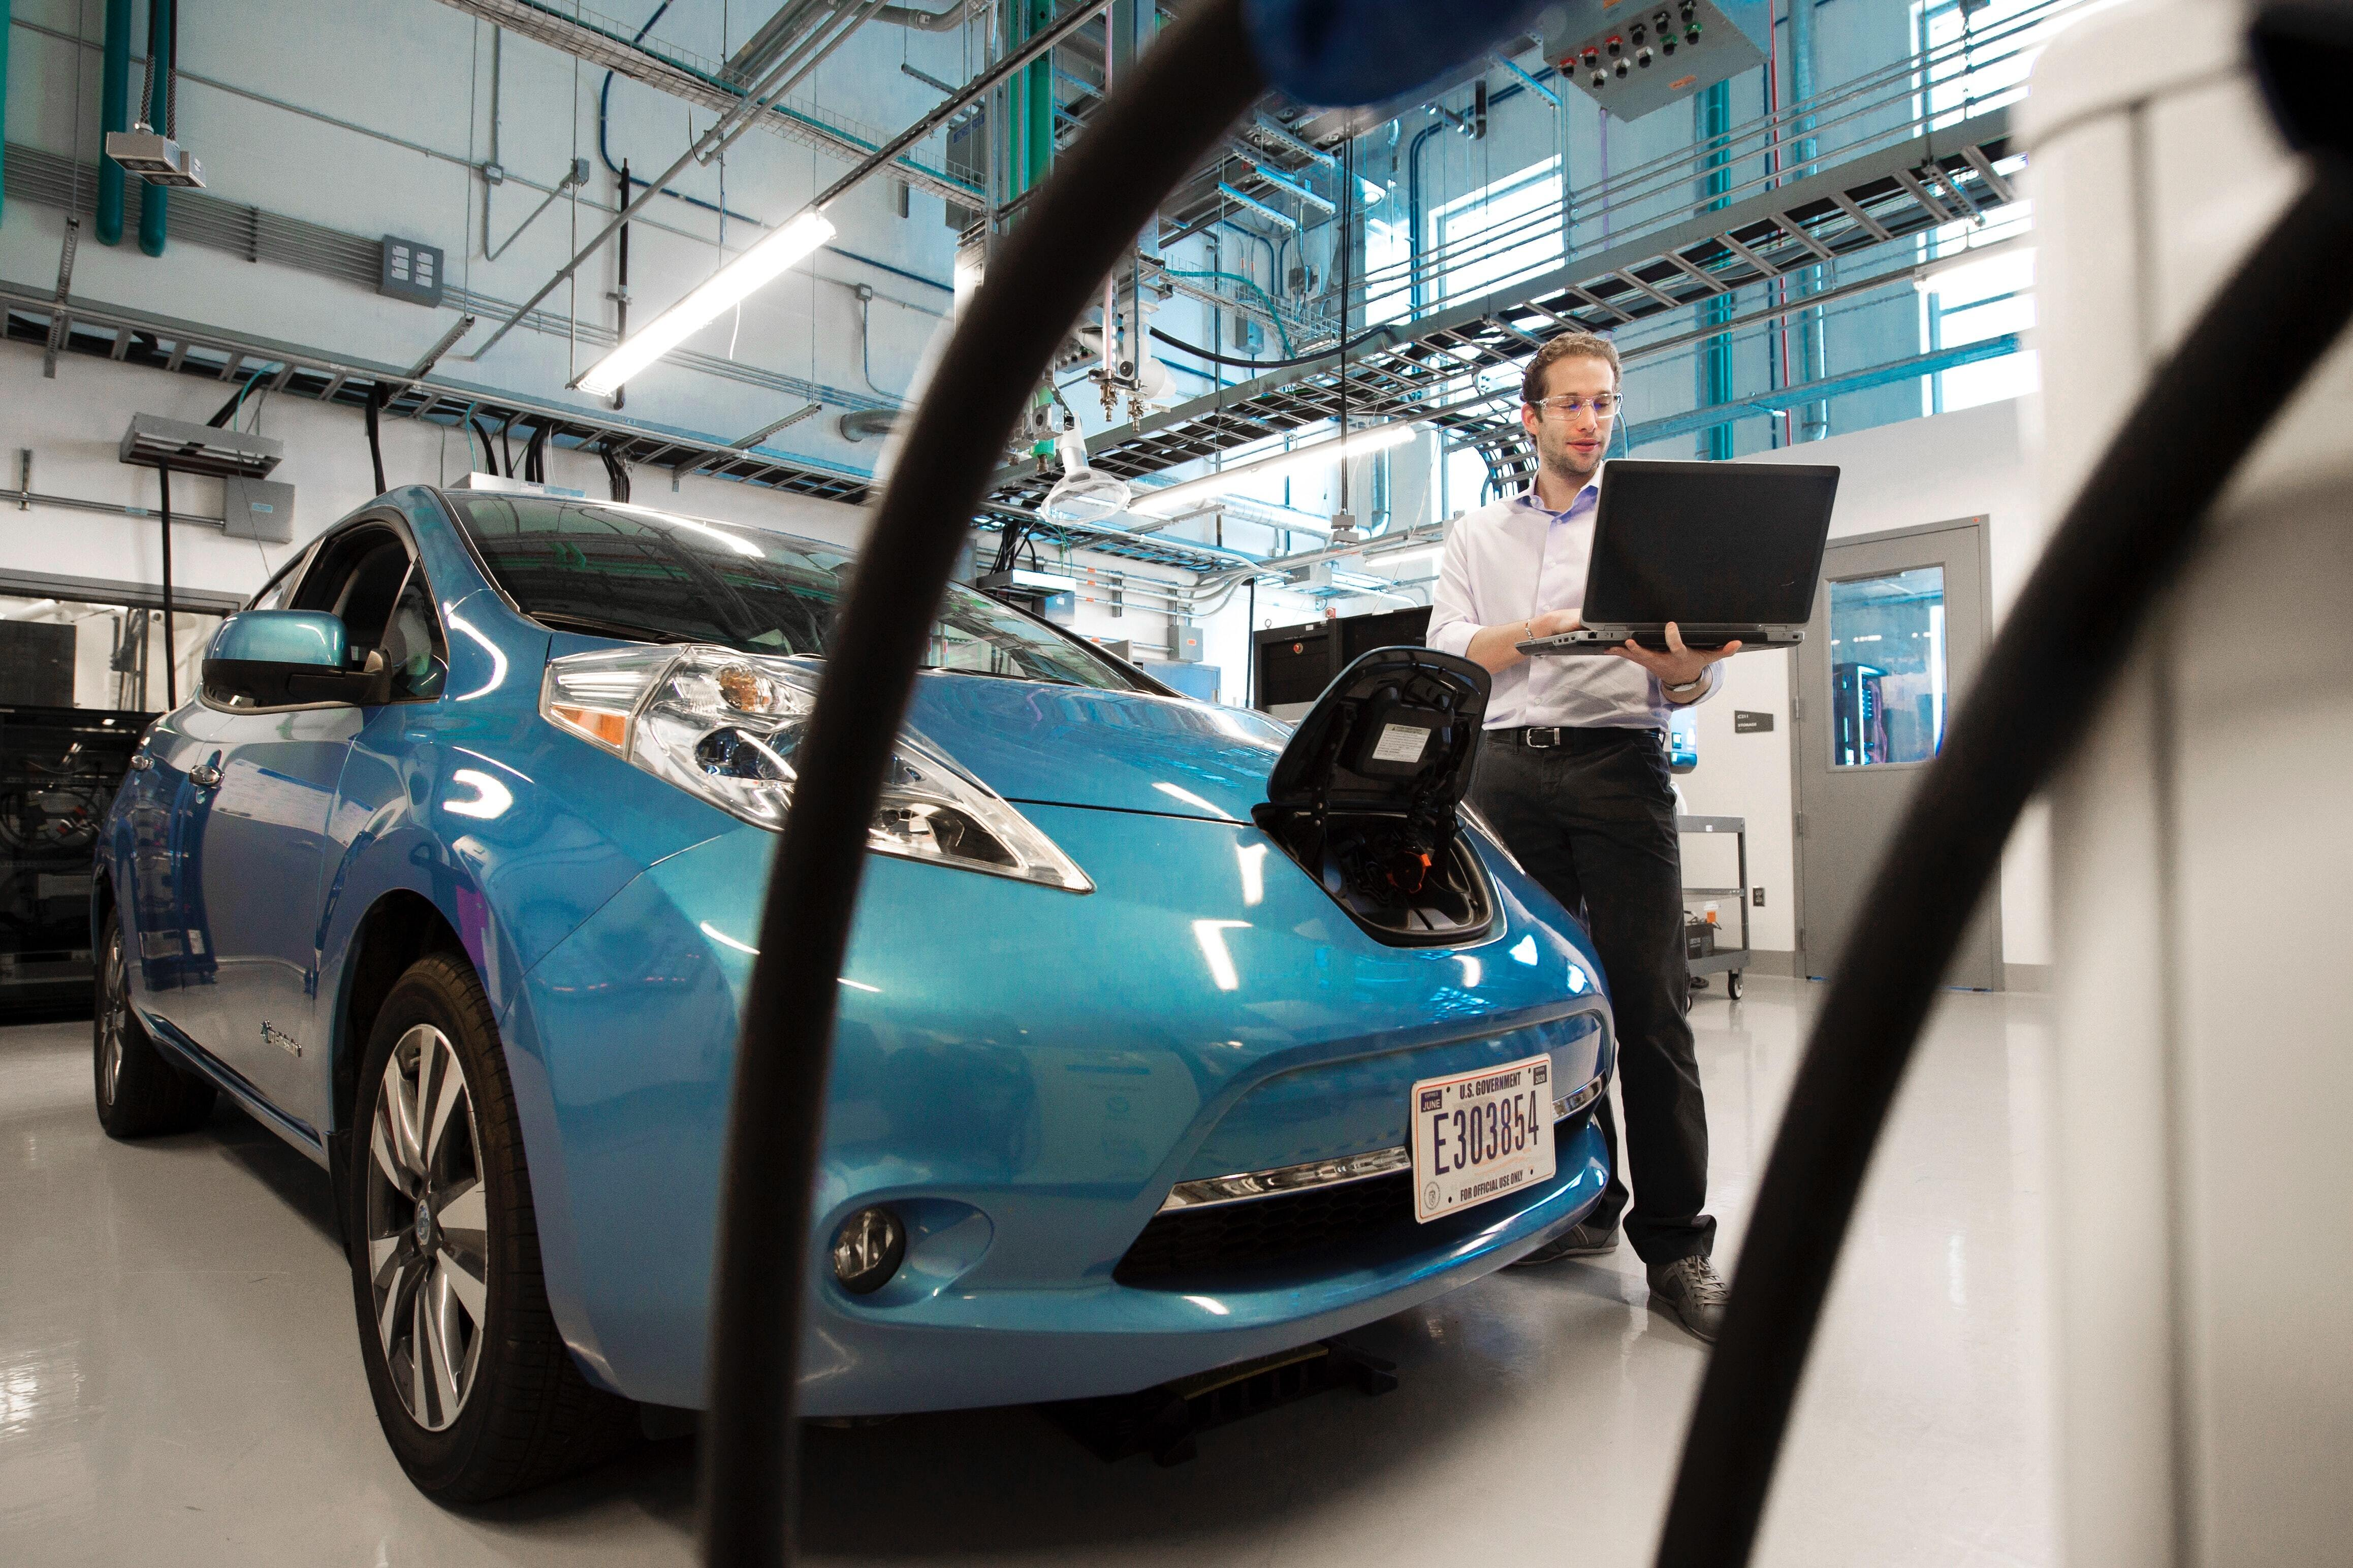 A man holding a laptop next to an EV, seemingly checking the status of the battery